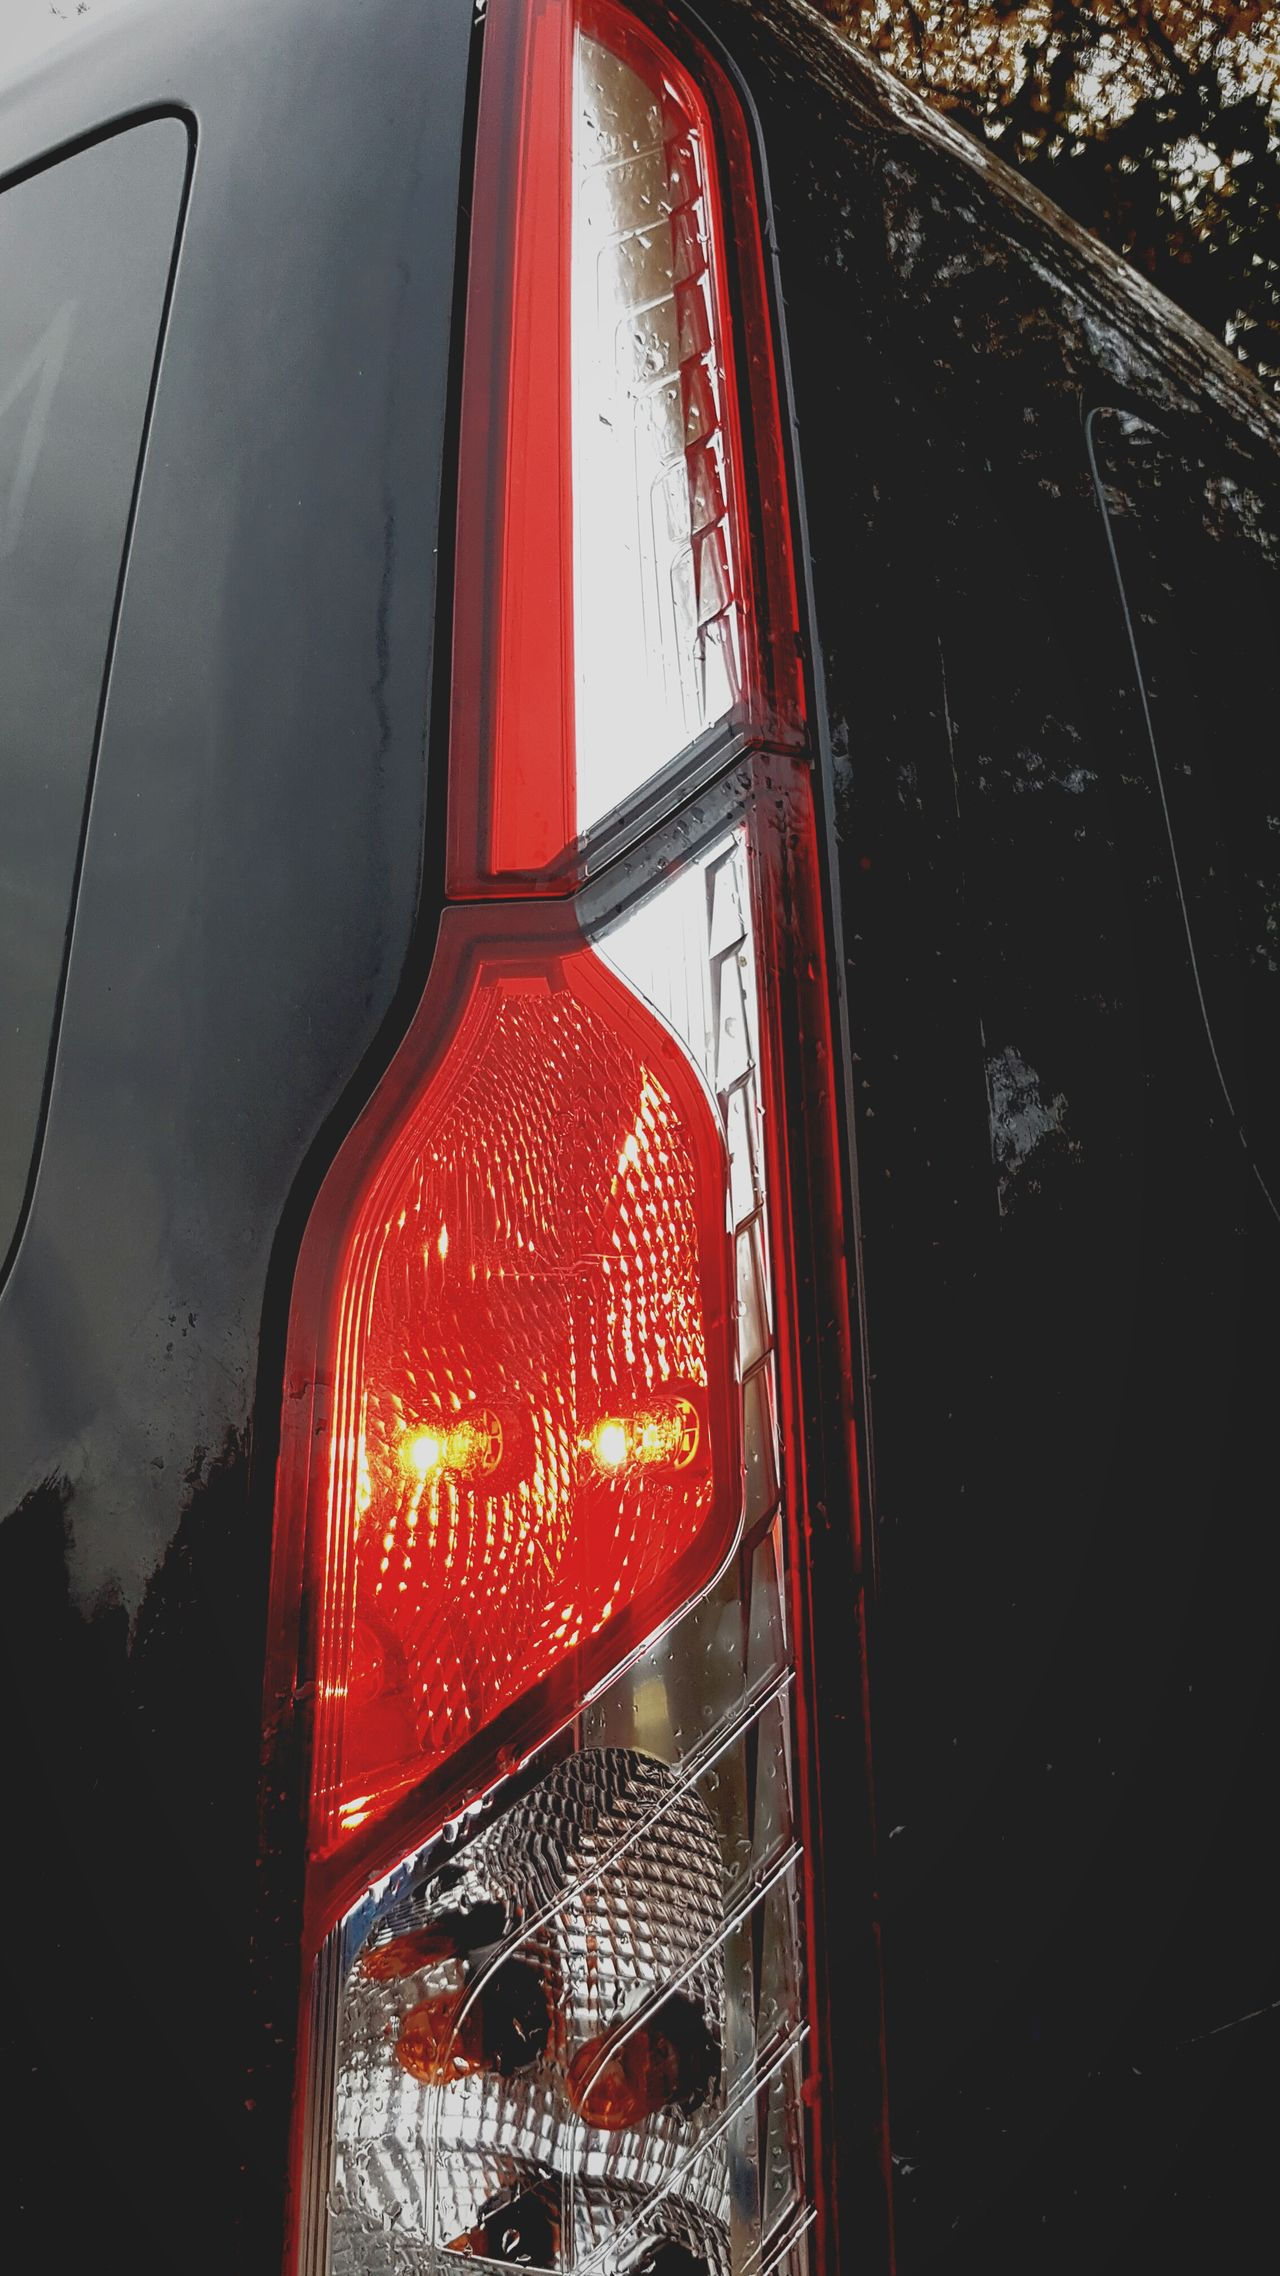 Red Transportation Close-up No People Water Red Light Outdoors Day Brake Lights